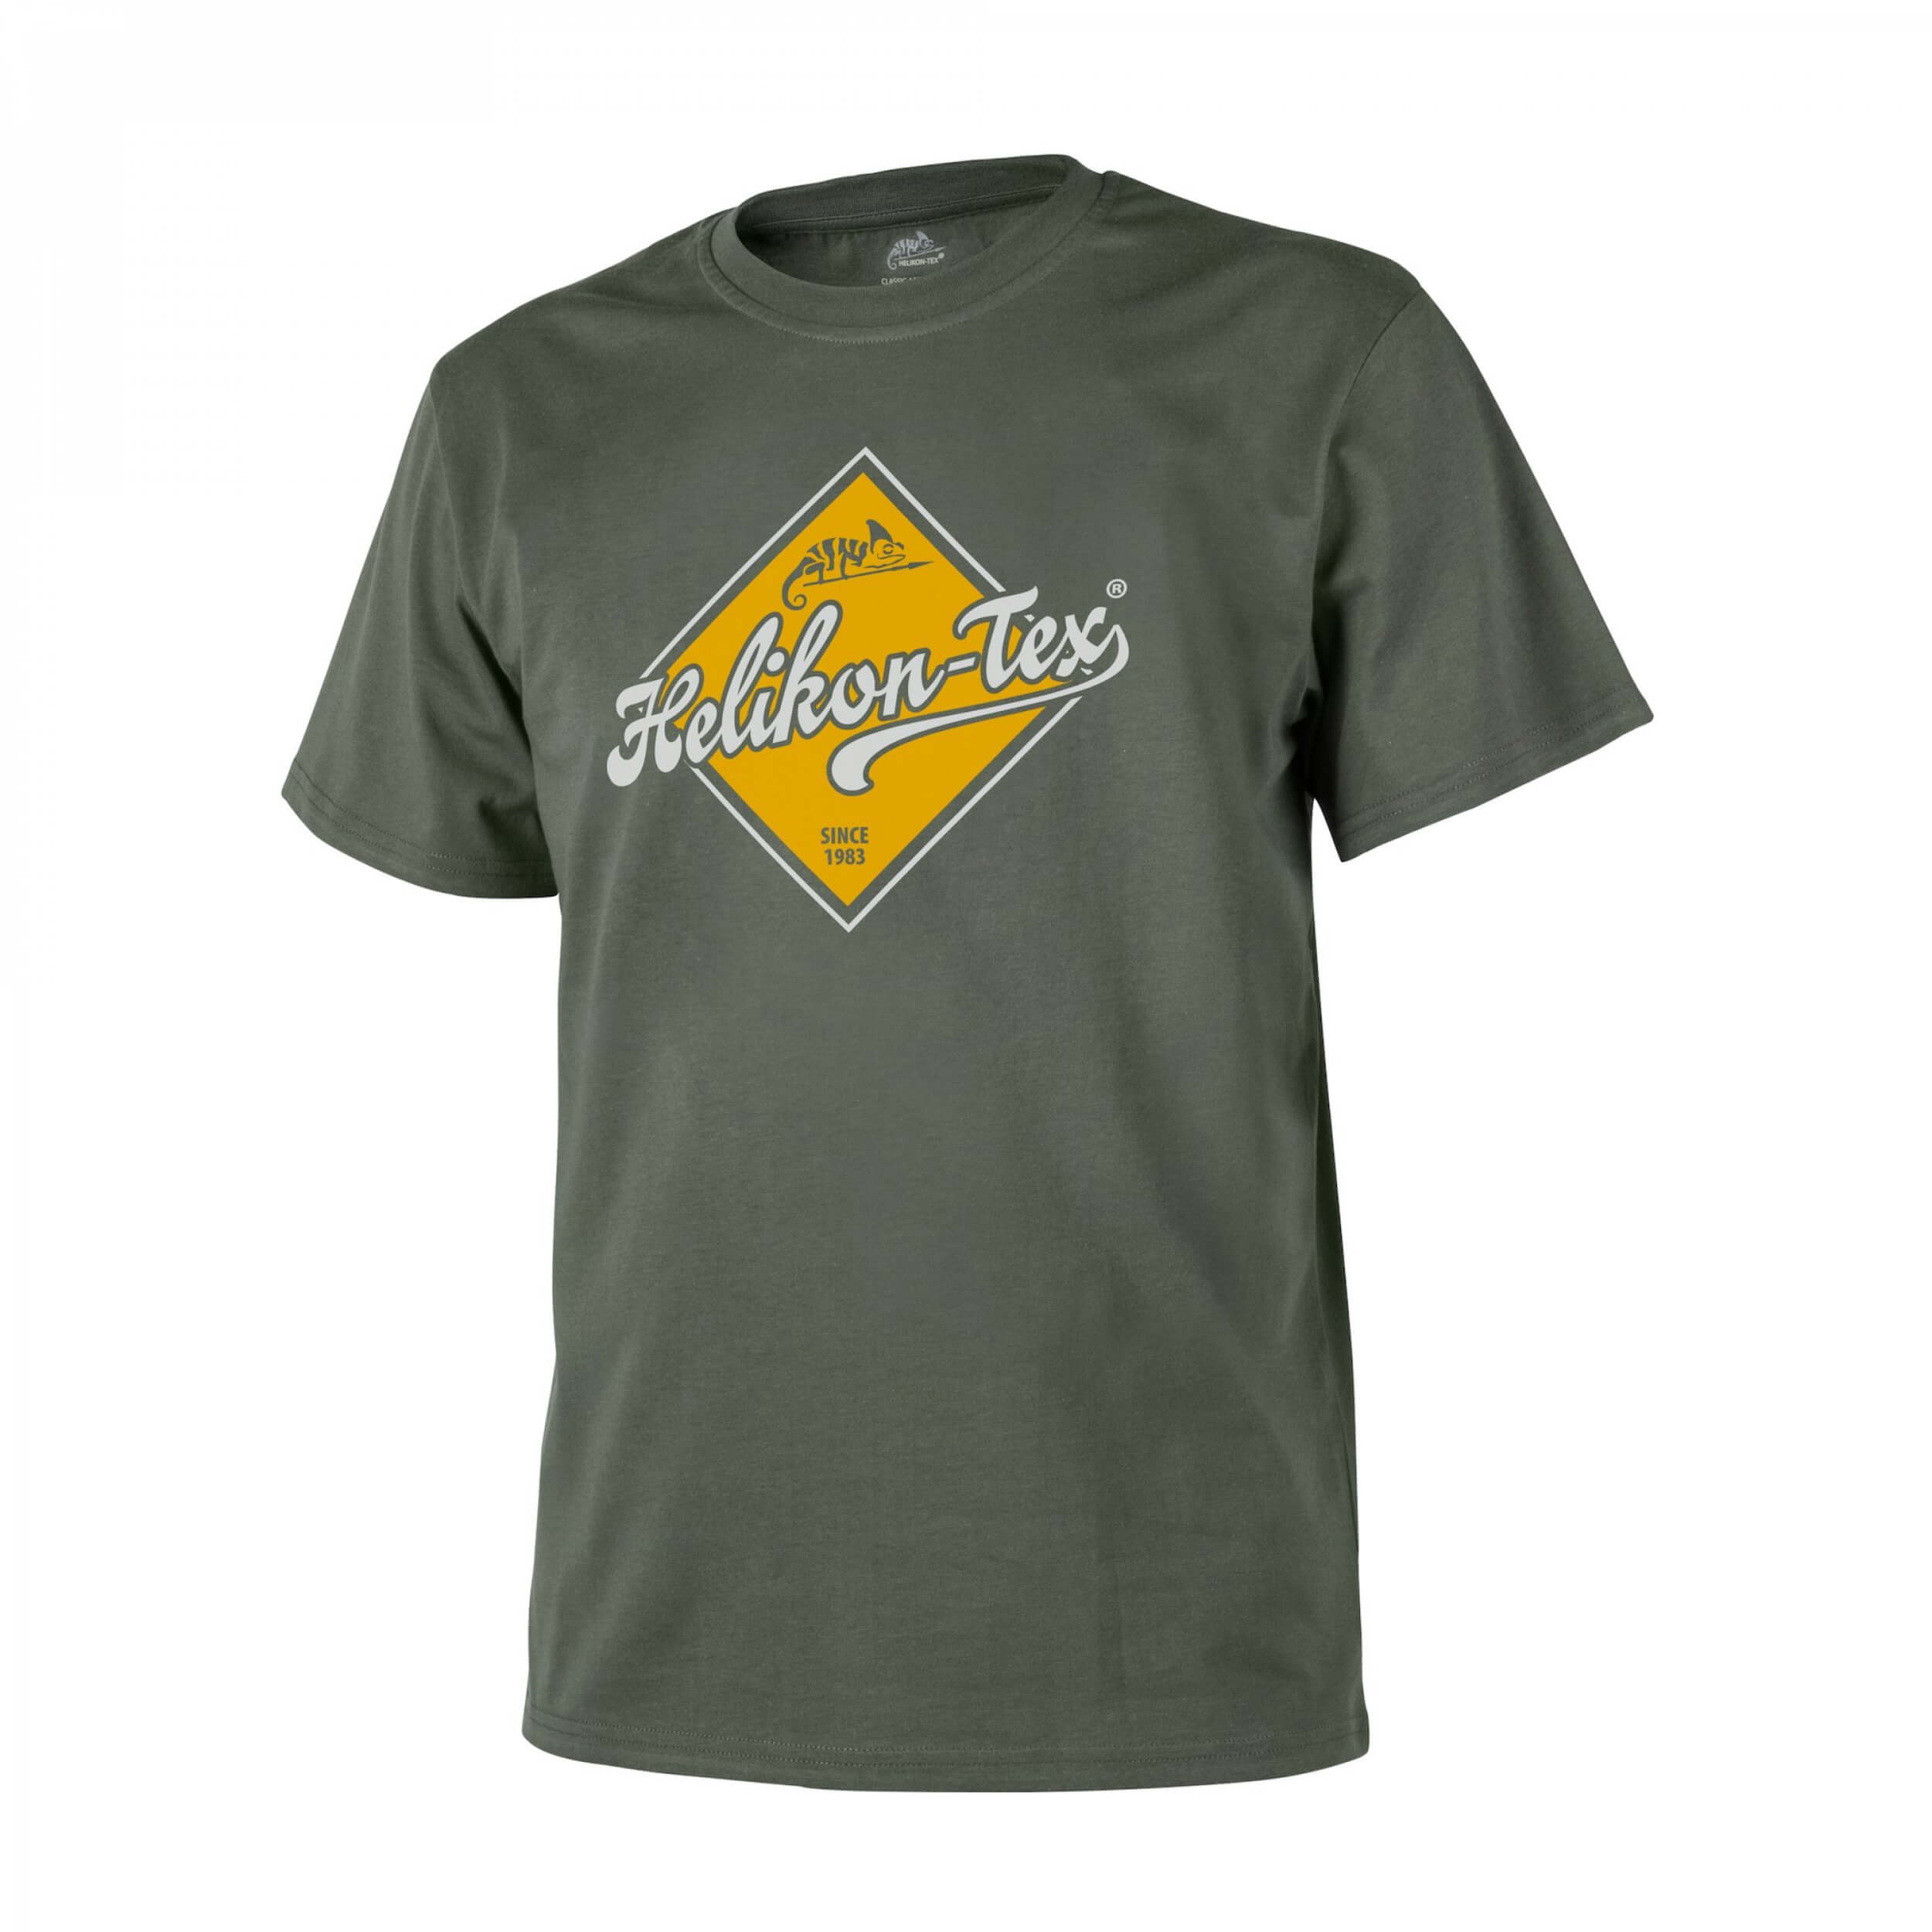 T-Shirt (Helikon-Tex Road Sign) -Cotton- Olive Green